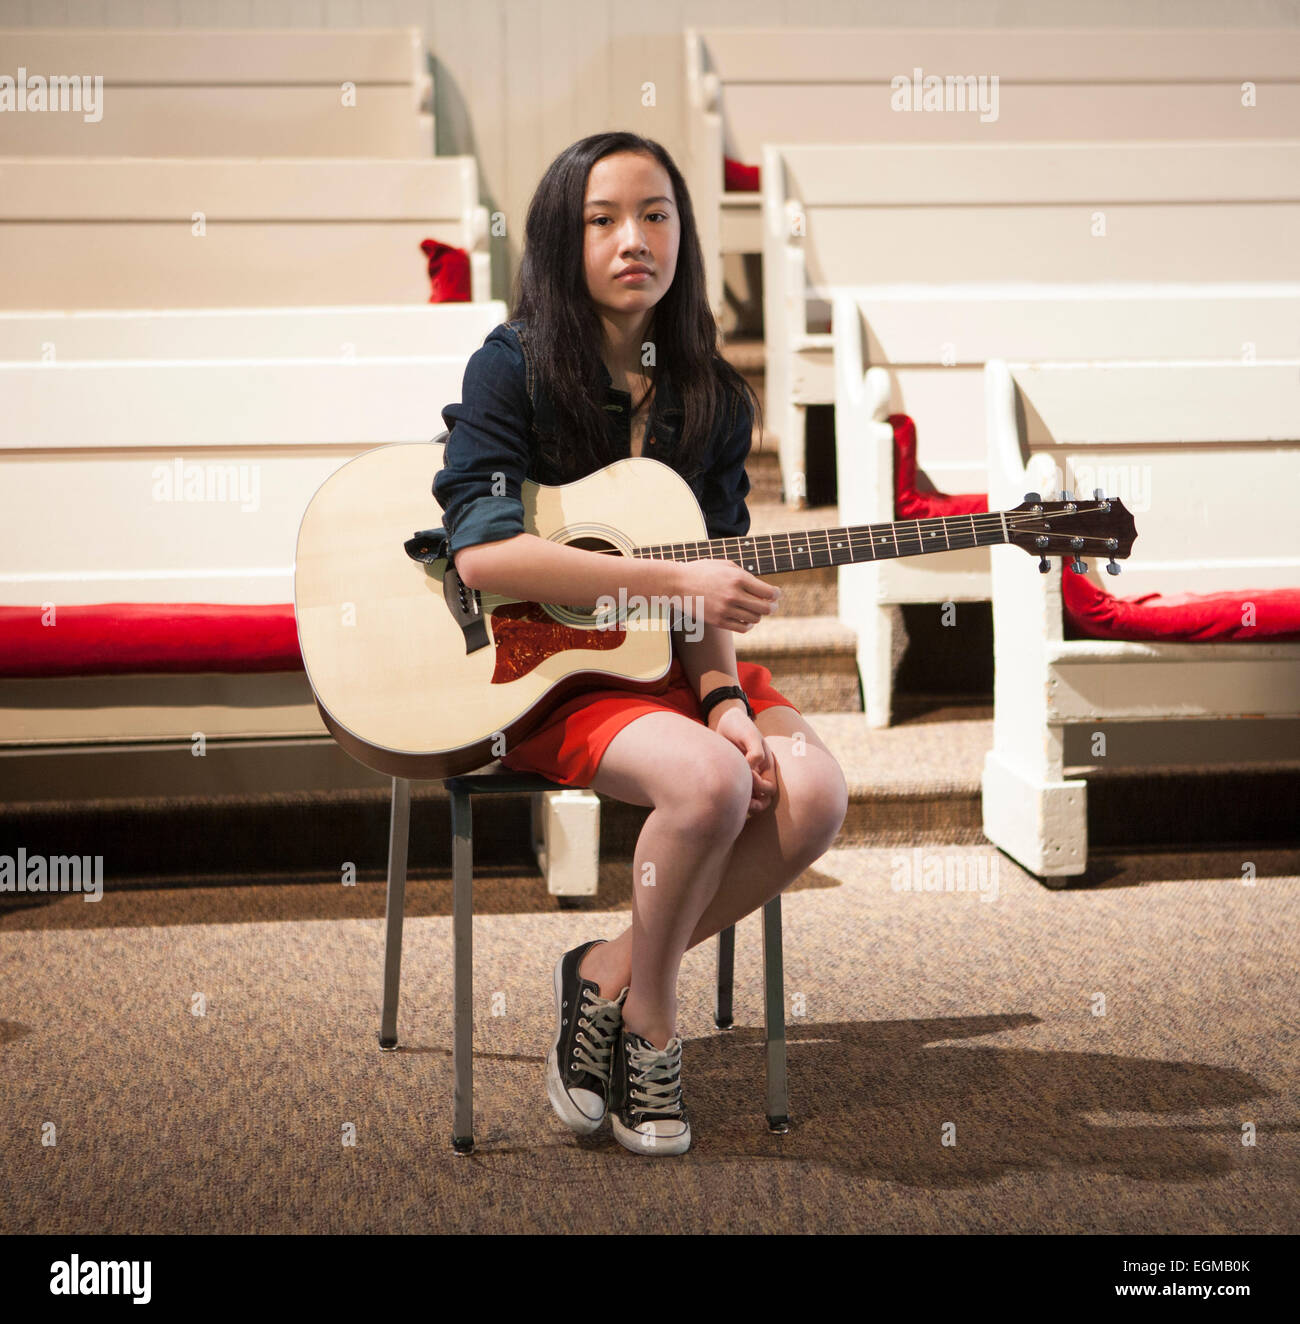 Pre-Teen Girl With Guitar, Portrait - Stock Image